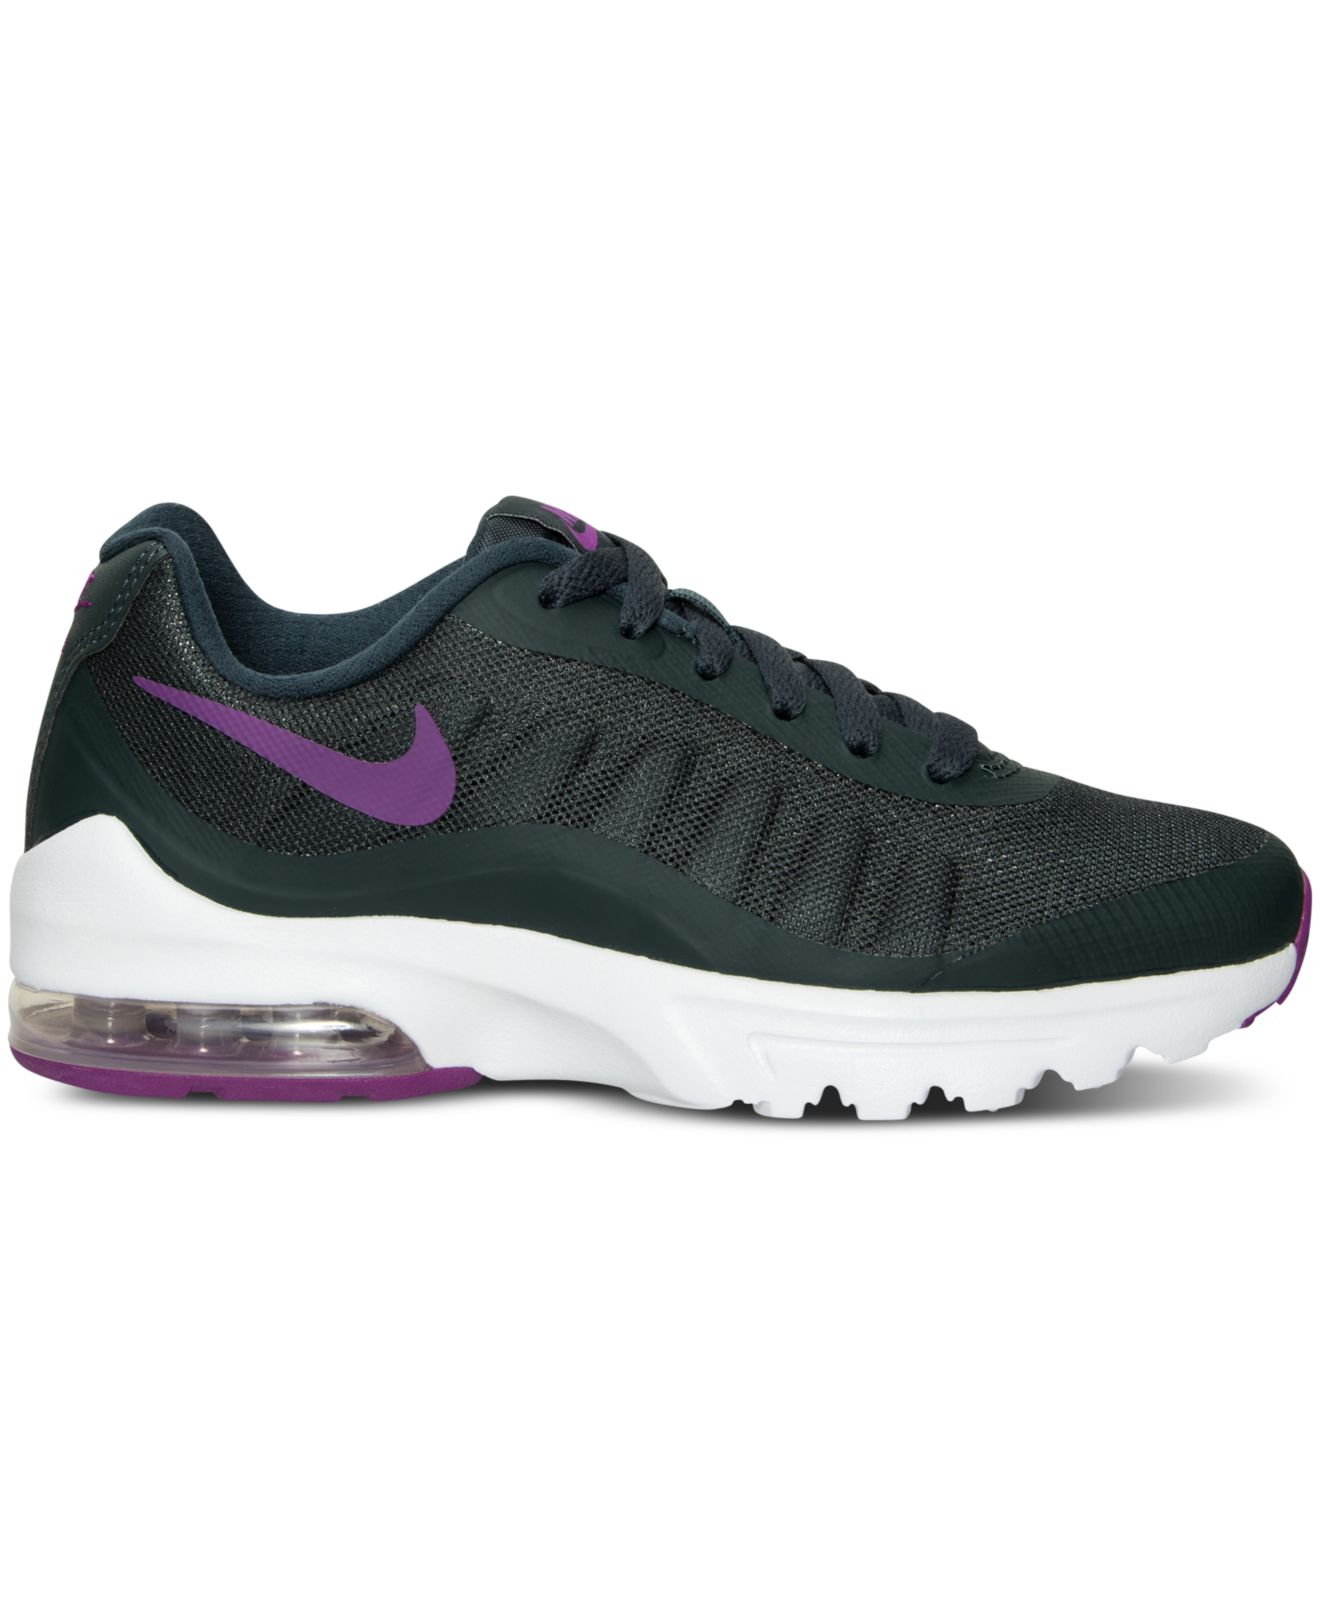 7e44095528 Nike Women's Air Max Invigor Running Sneakers From Finish Line in ...